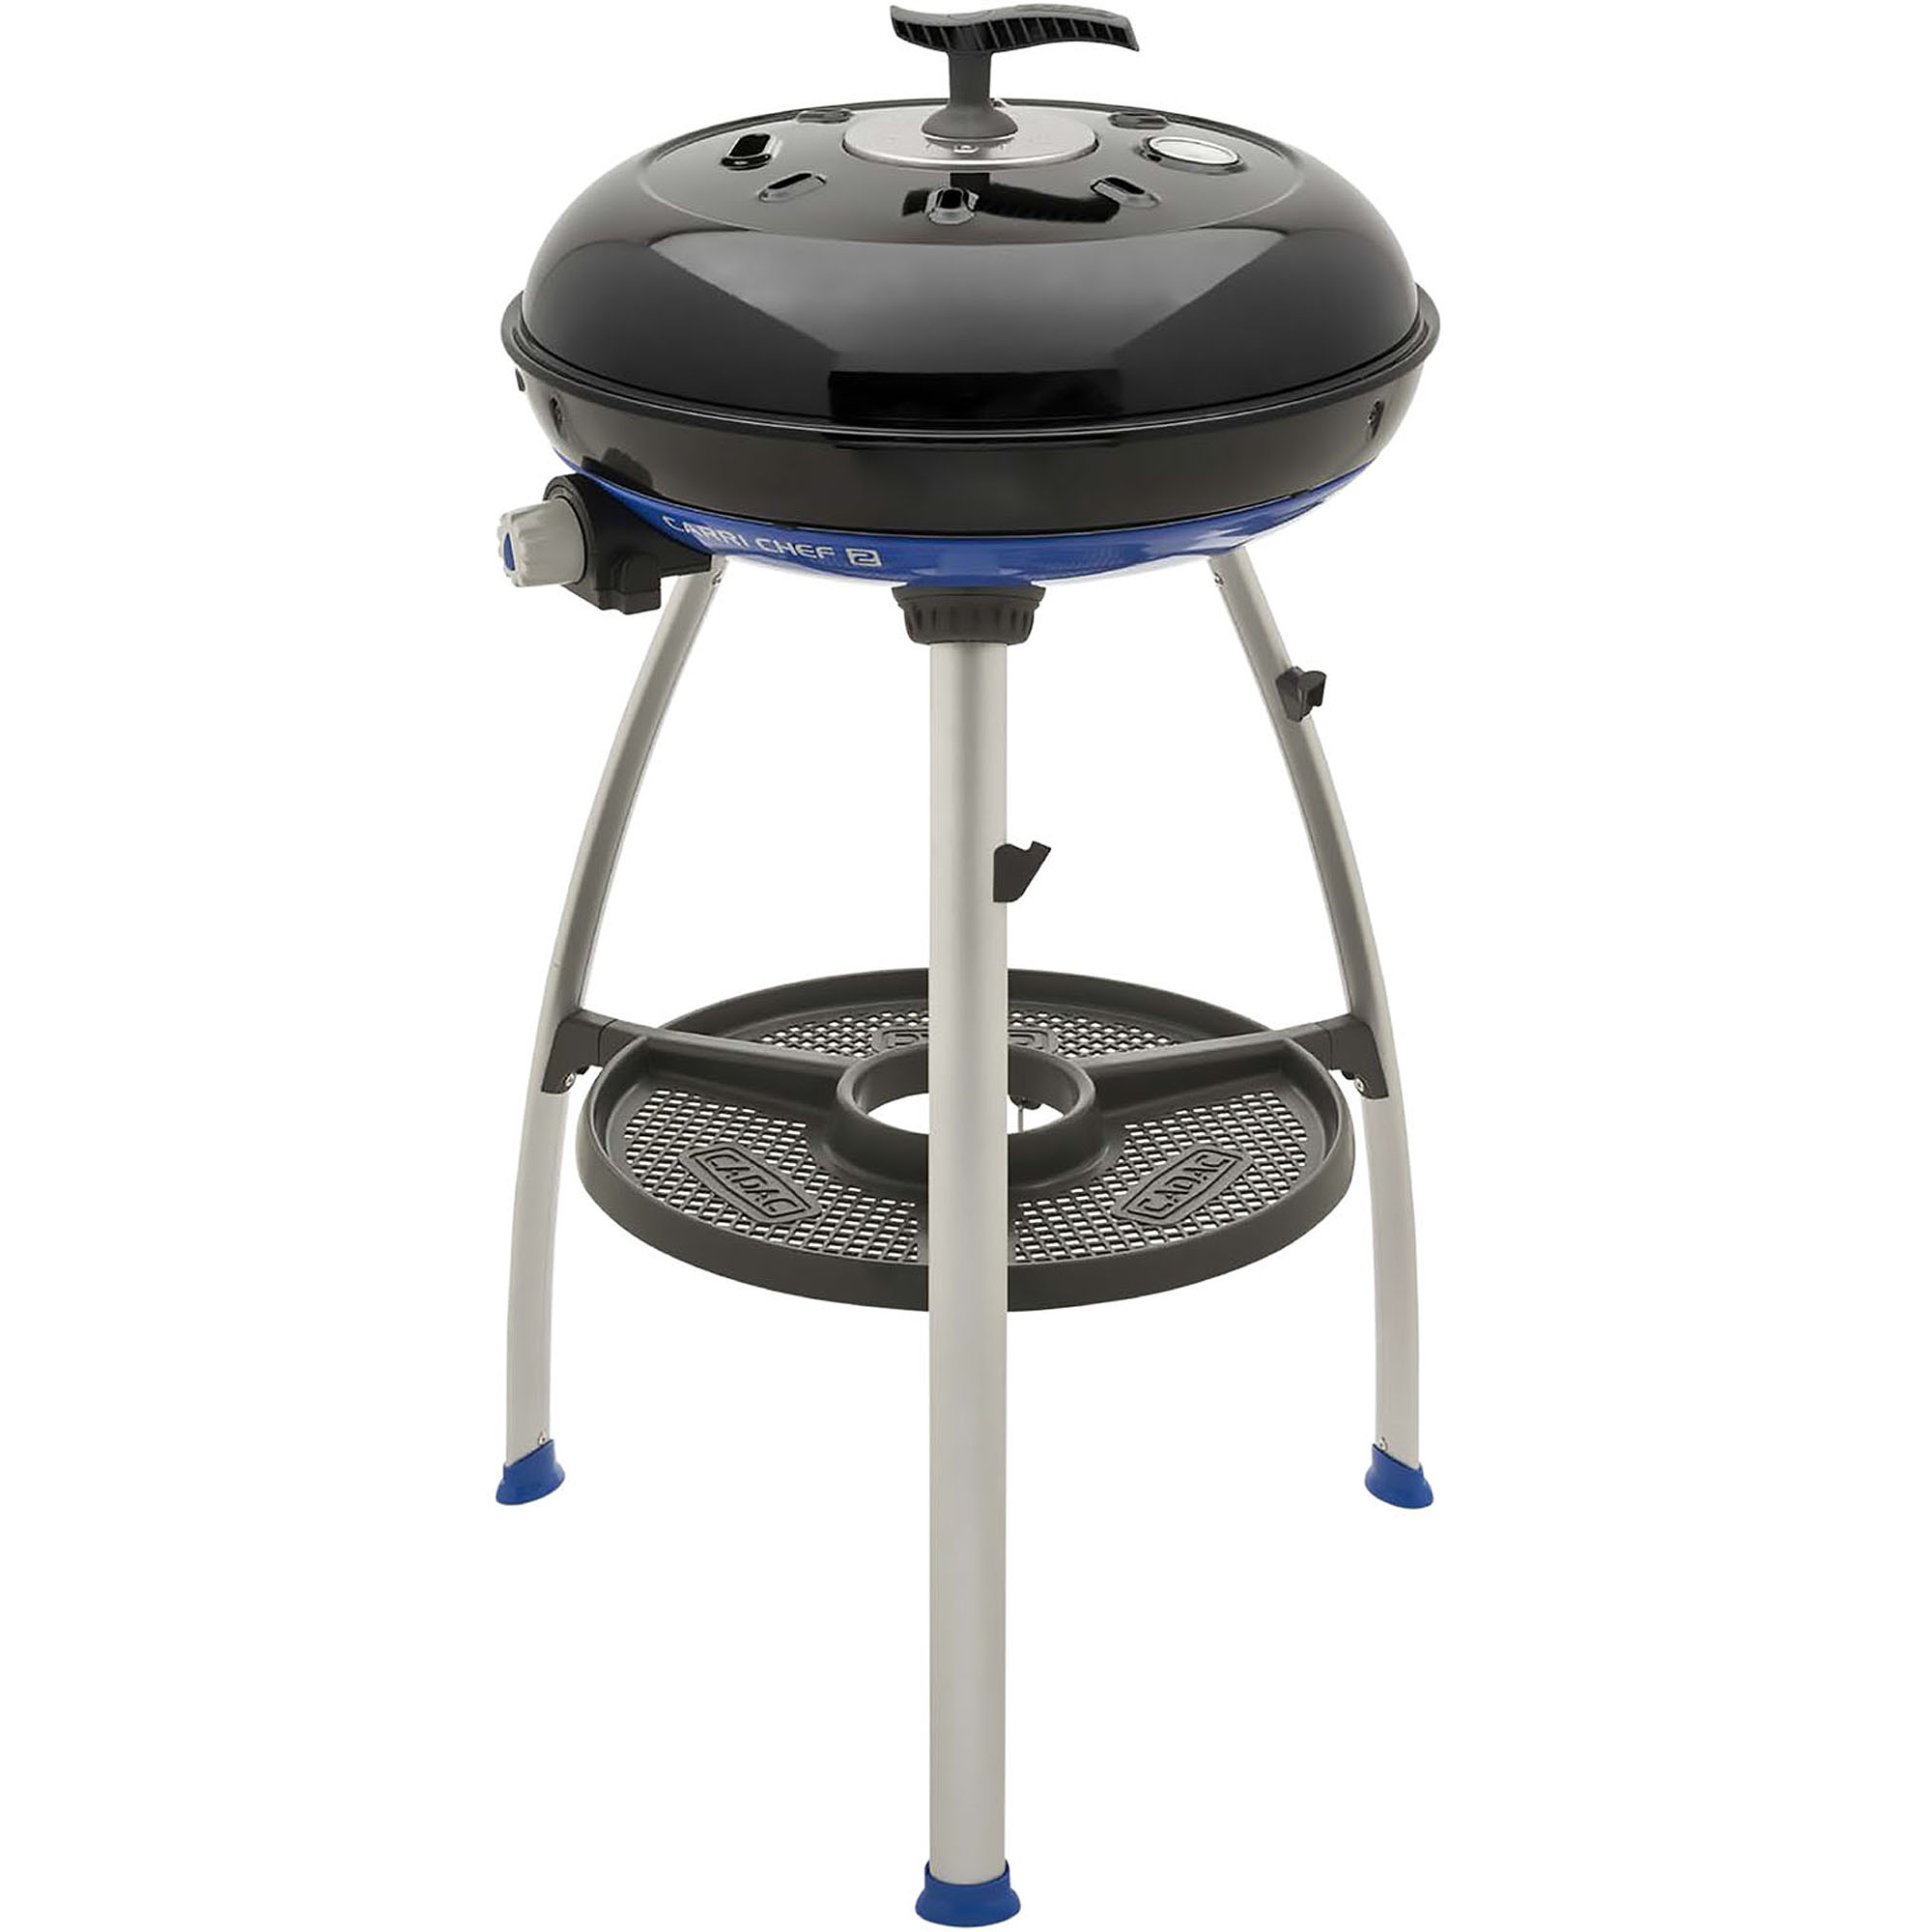 Cadac Carri Chef 2 Portable Grill with Pot Ring, Grill Plate, and Chef Pan